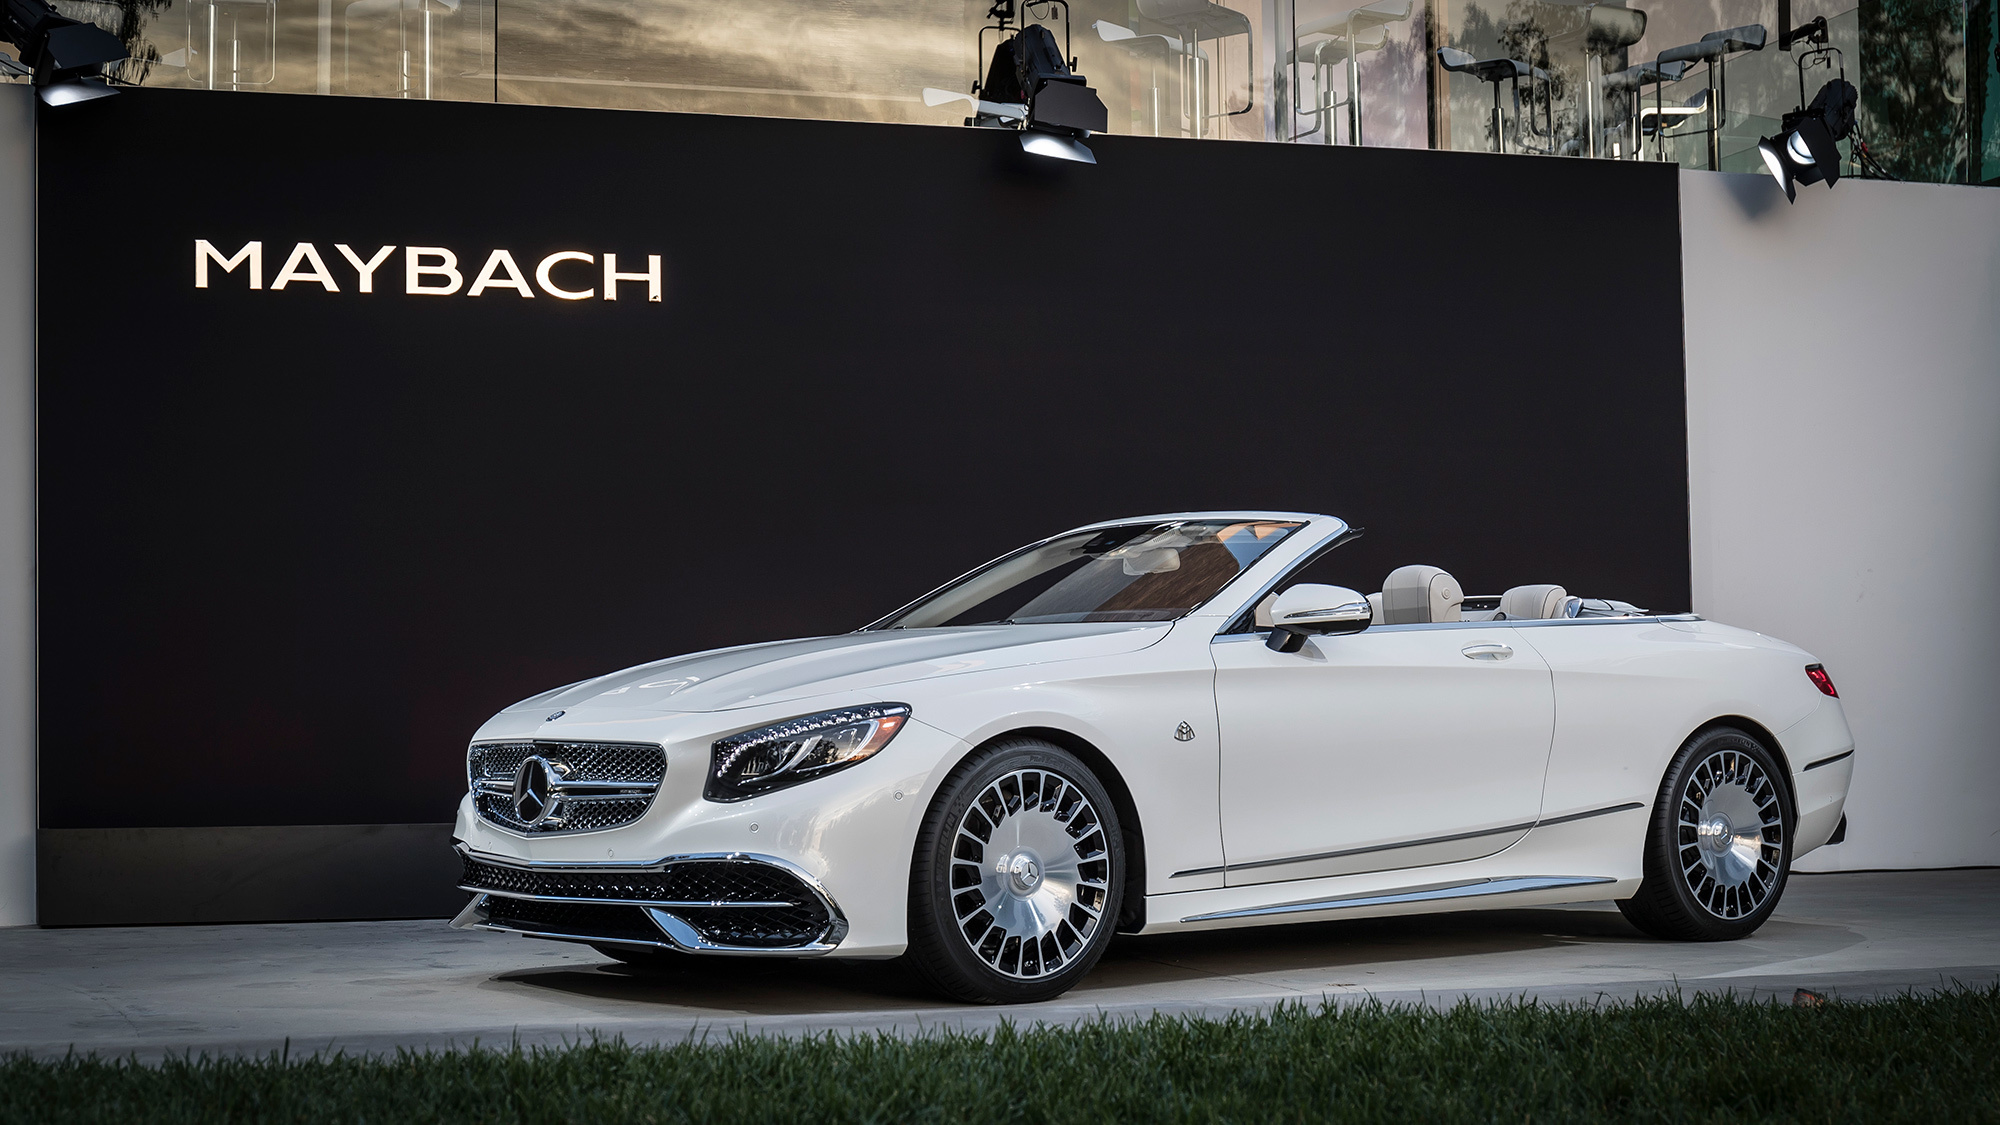 Mercedes Maybach S 650 Wallpaper For Laptop